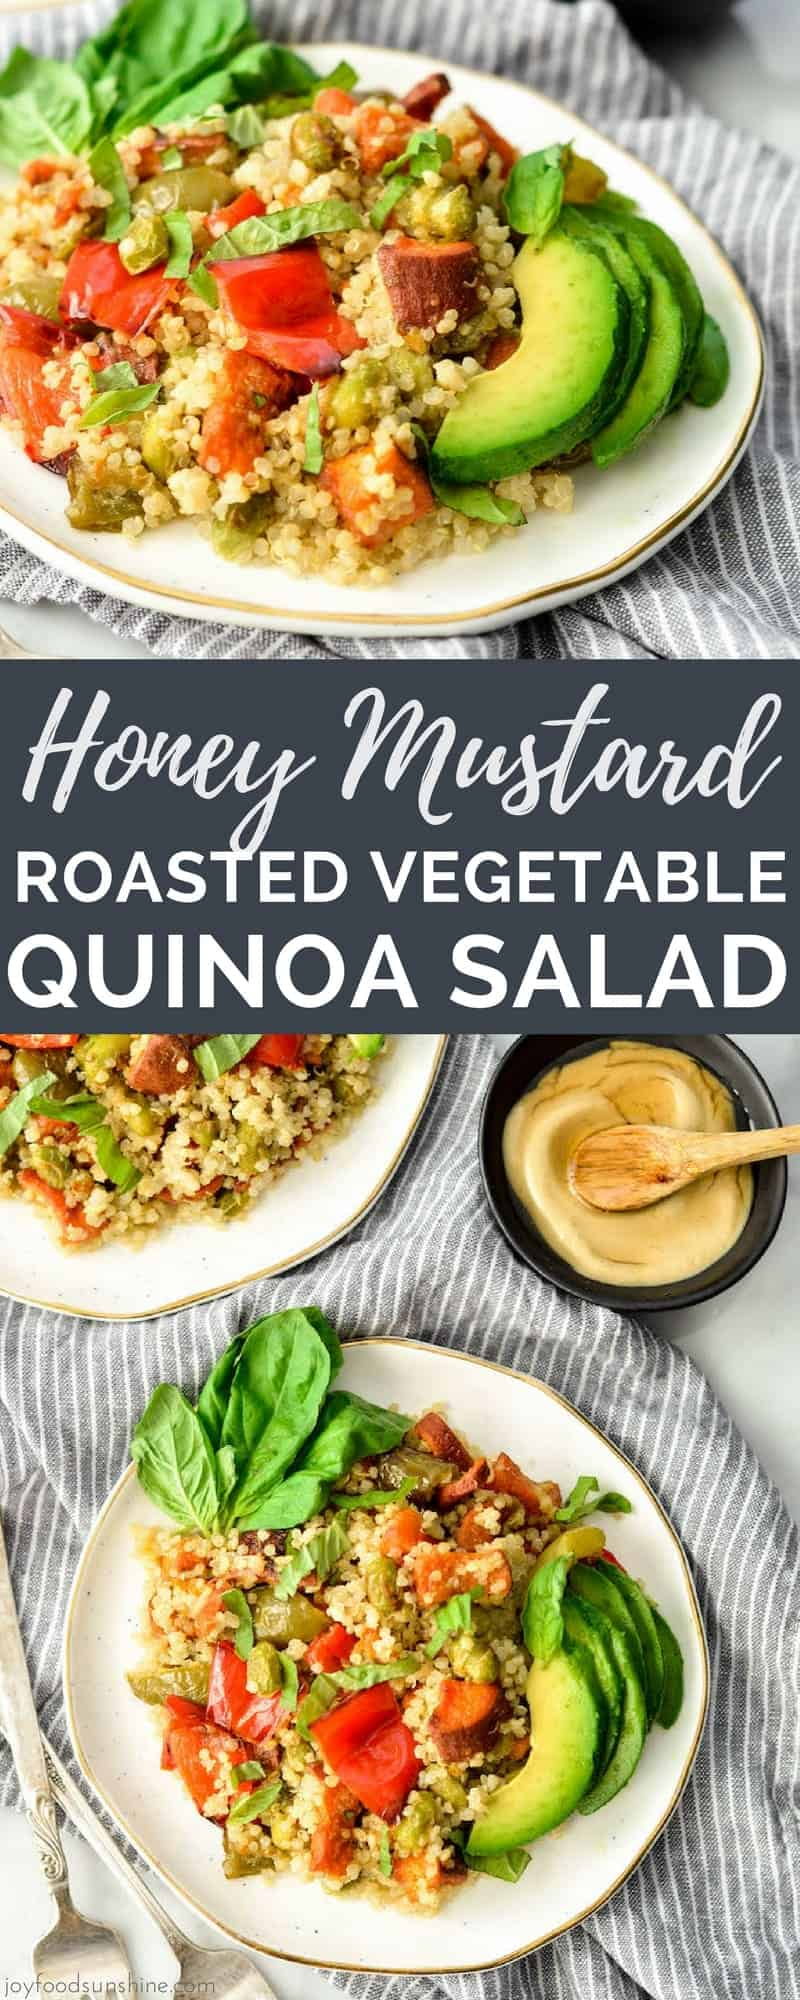 This Honey Mustard Roasted Vegetable Quinoa Salad recipe is a perfect meatless main dish or side dish! It's loaded with veggies & protein and bursting with flavor! It's a great meal prep recipe that you can make ahead of time and it's paleo, gluten-free dairy-free and vegan-friendly! #quinoa #salad #honeymustard #paleo #veganfriendly #vegan #sidedish #maindish #honeymustard #sweetpotatoes #roastedvegetables